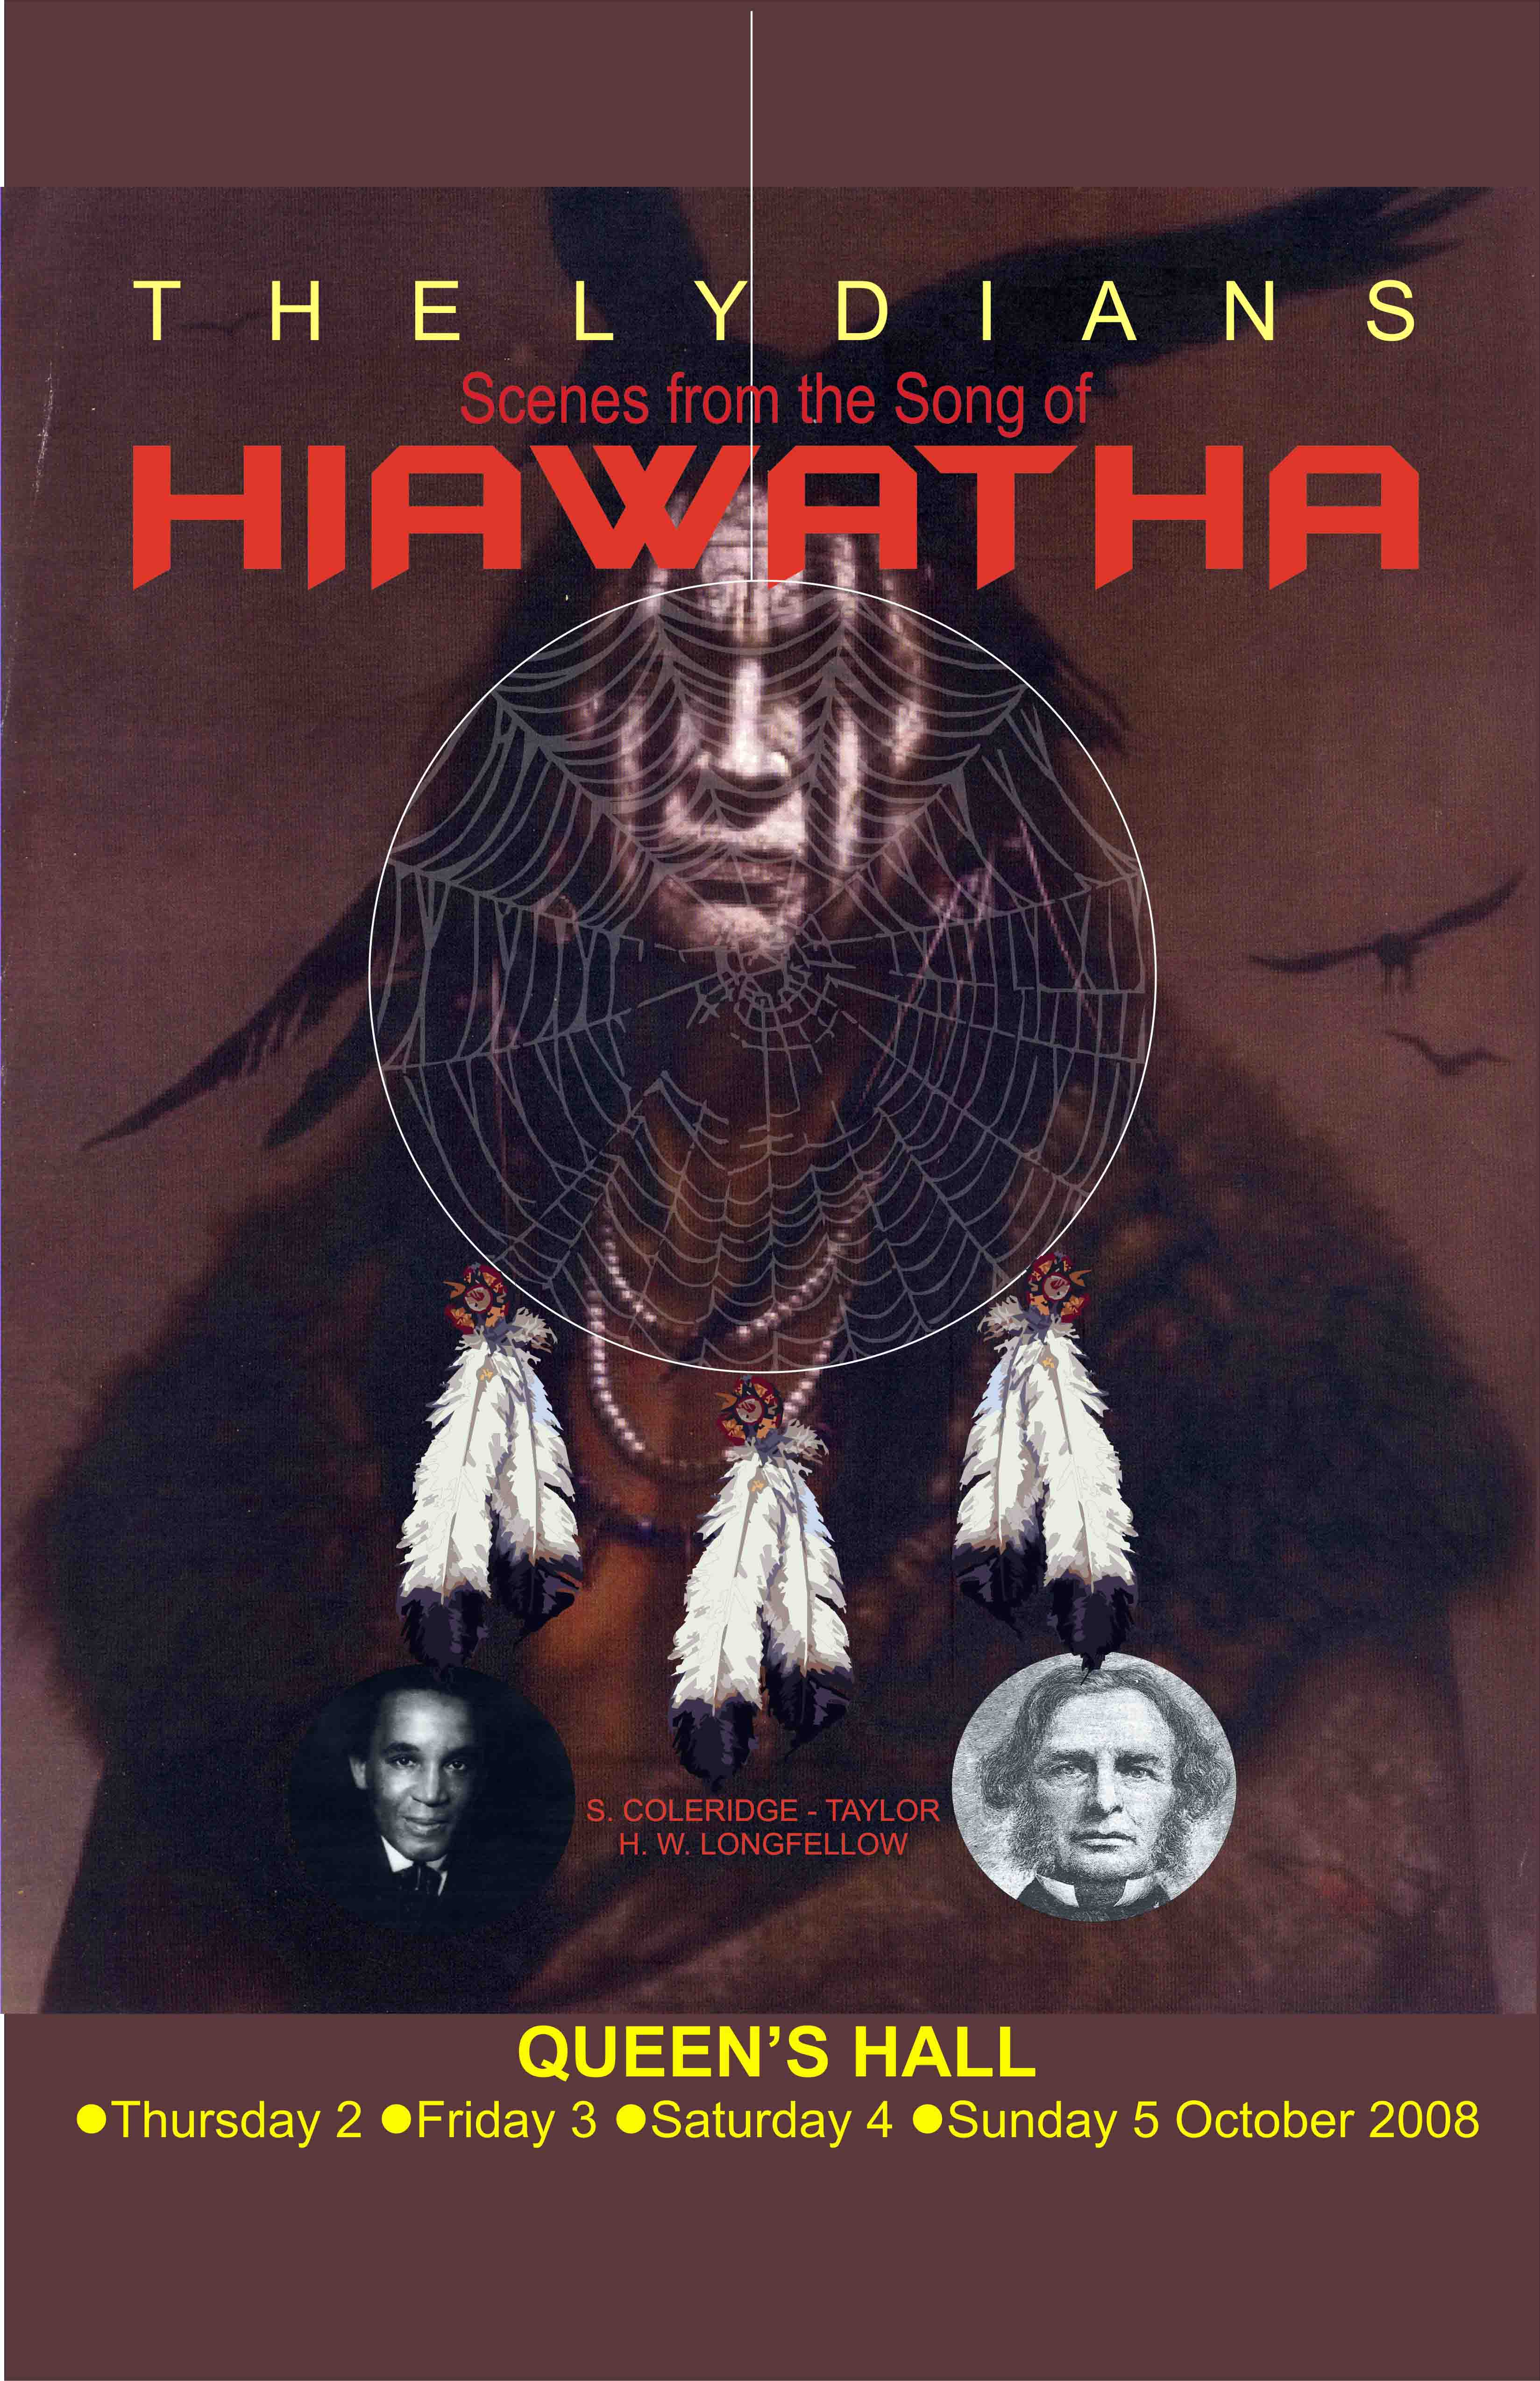 The Lydians programme cover Hiawatha by Coleridge-Taylor, 2008